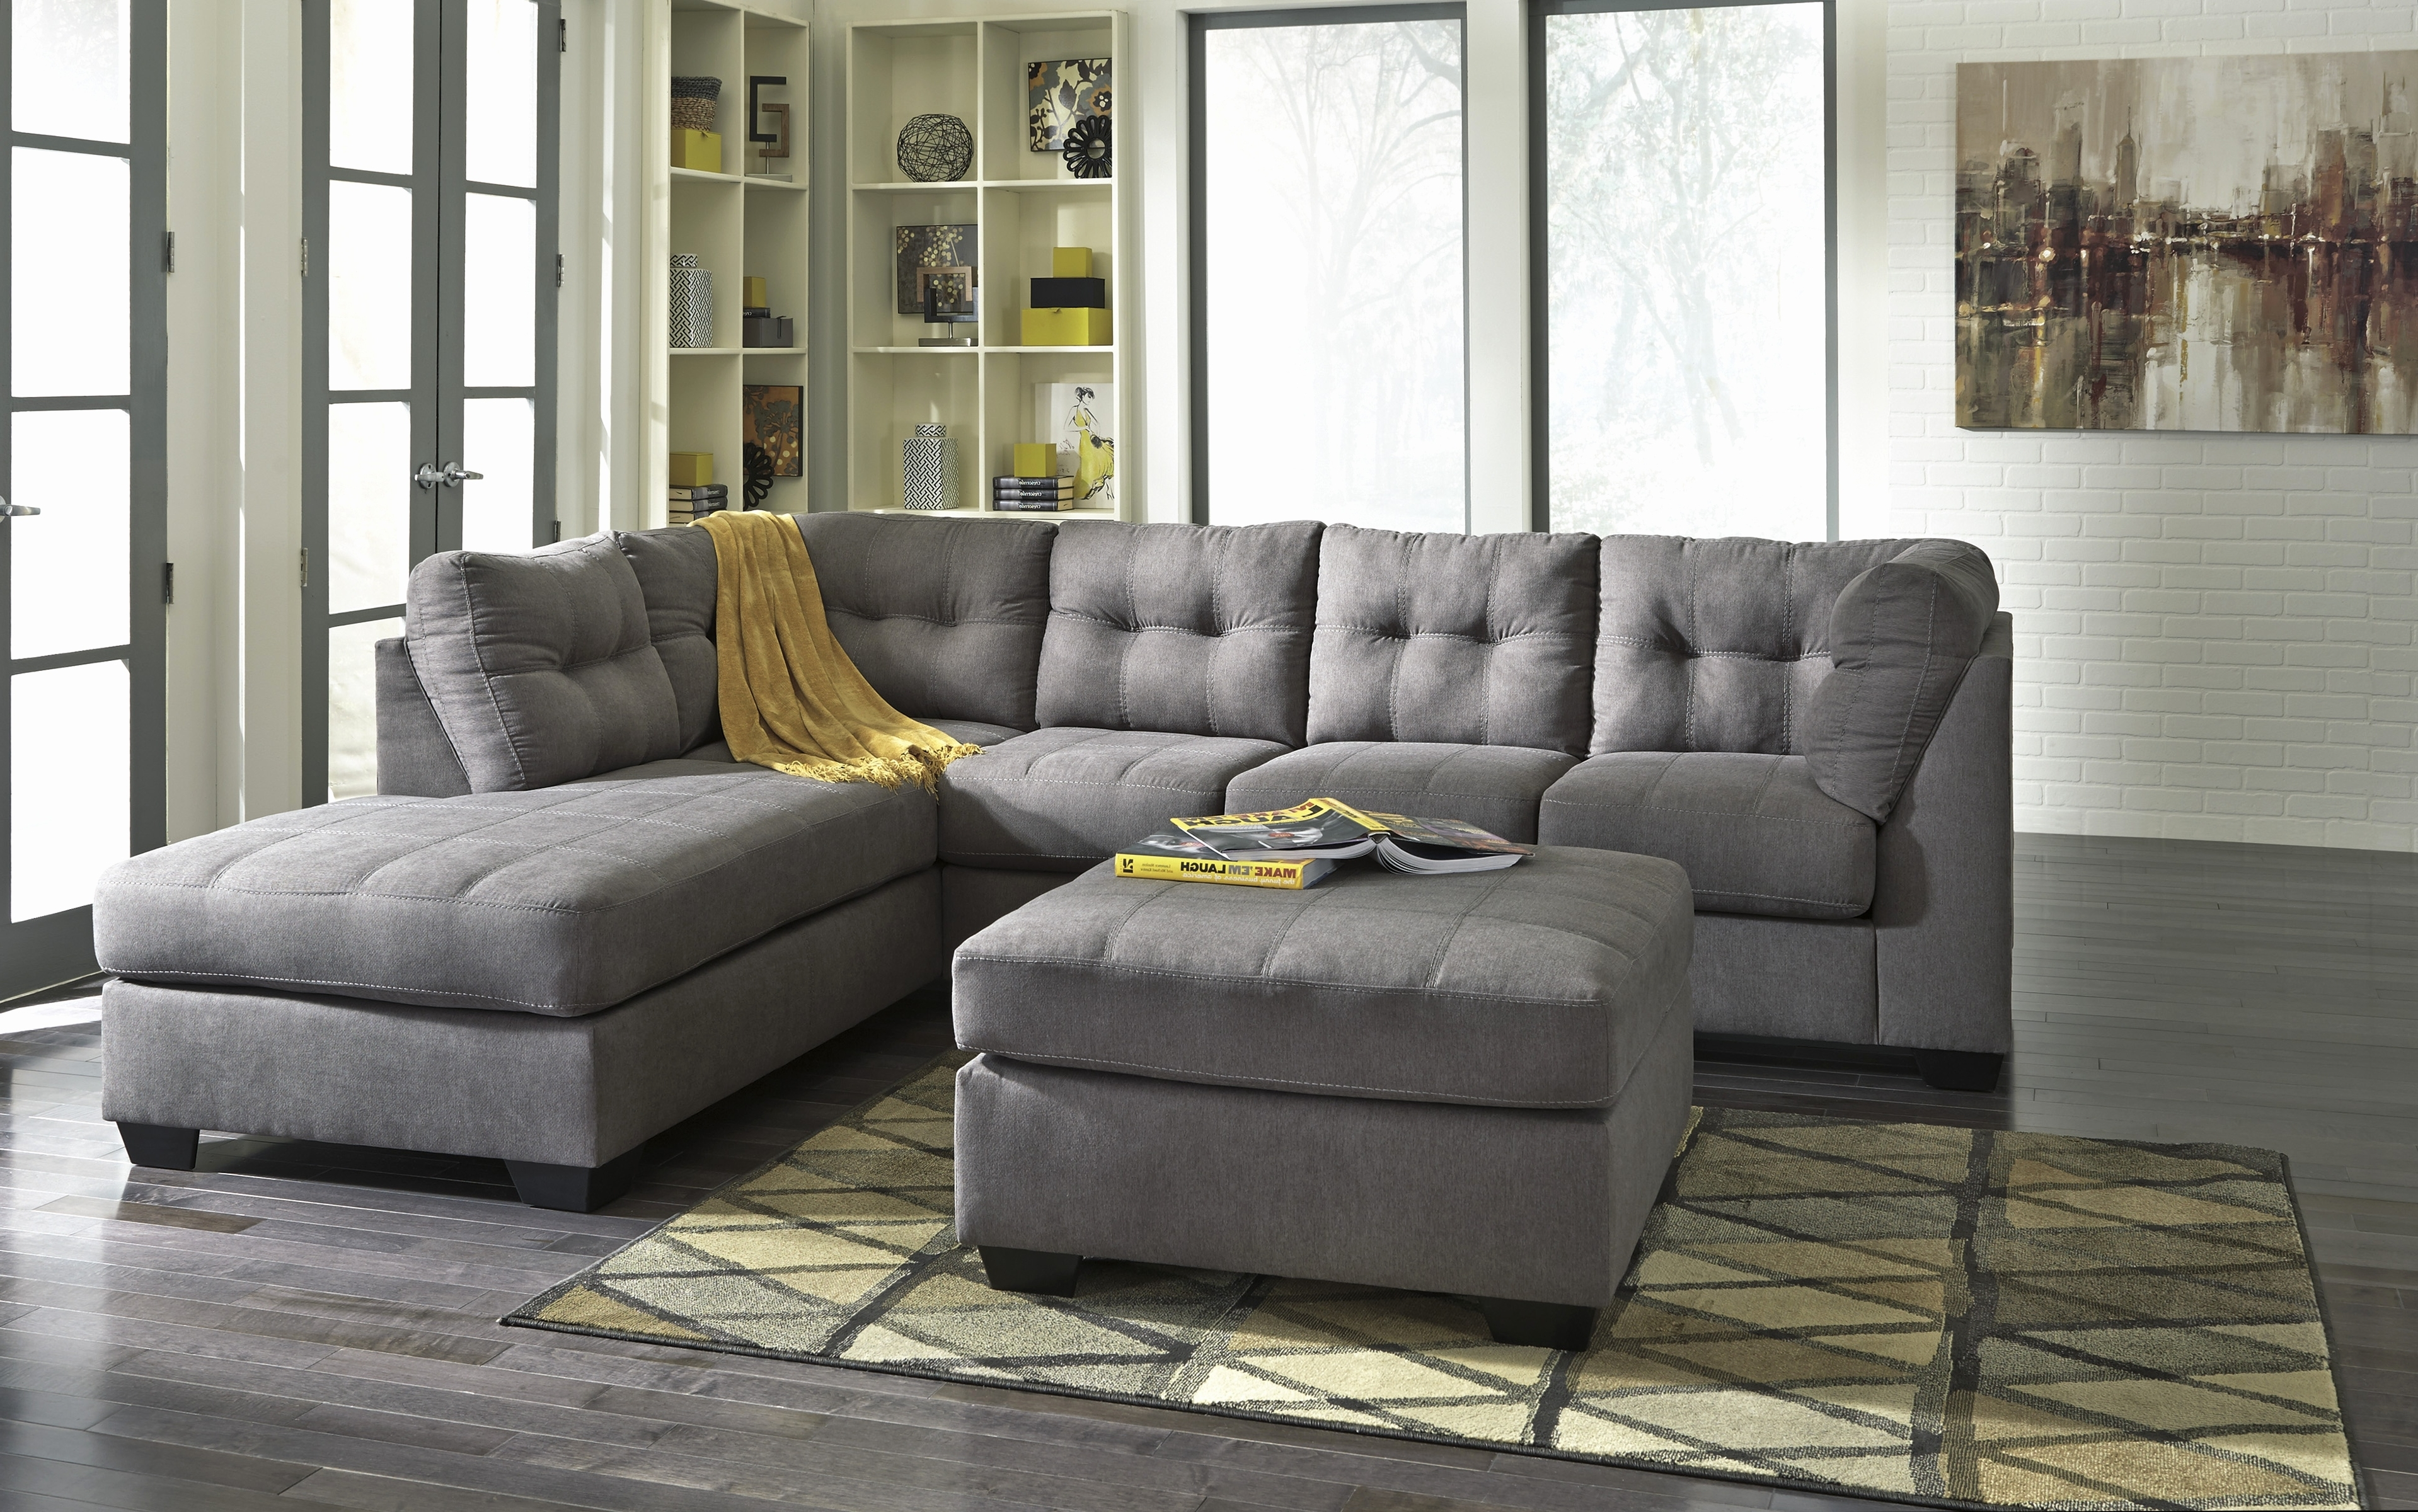 Grey Sectional Sofa Ashley Furniture 1025Theparty Com With Sofas In 2017 Sectional Sofas At Ashley Furniture (Gallery 5 of 15)